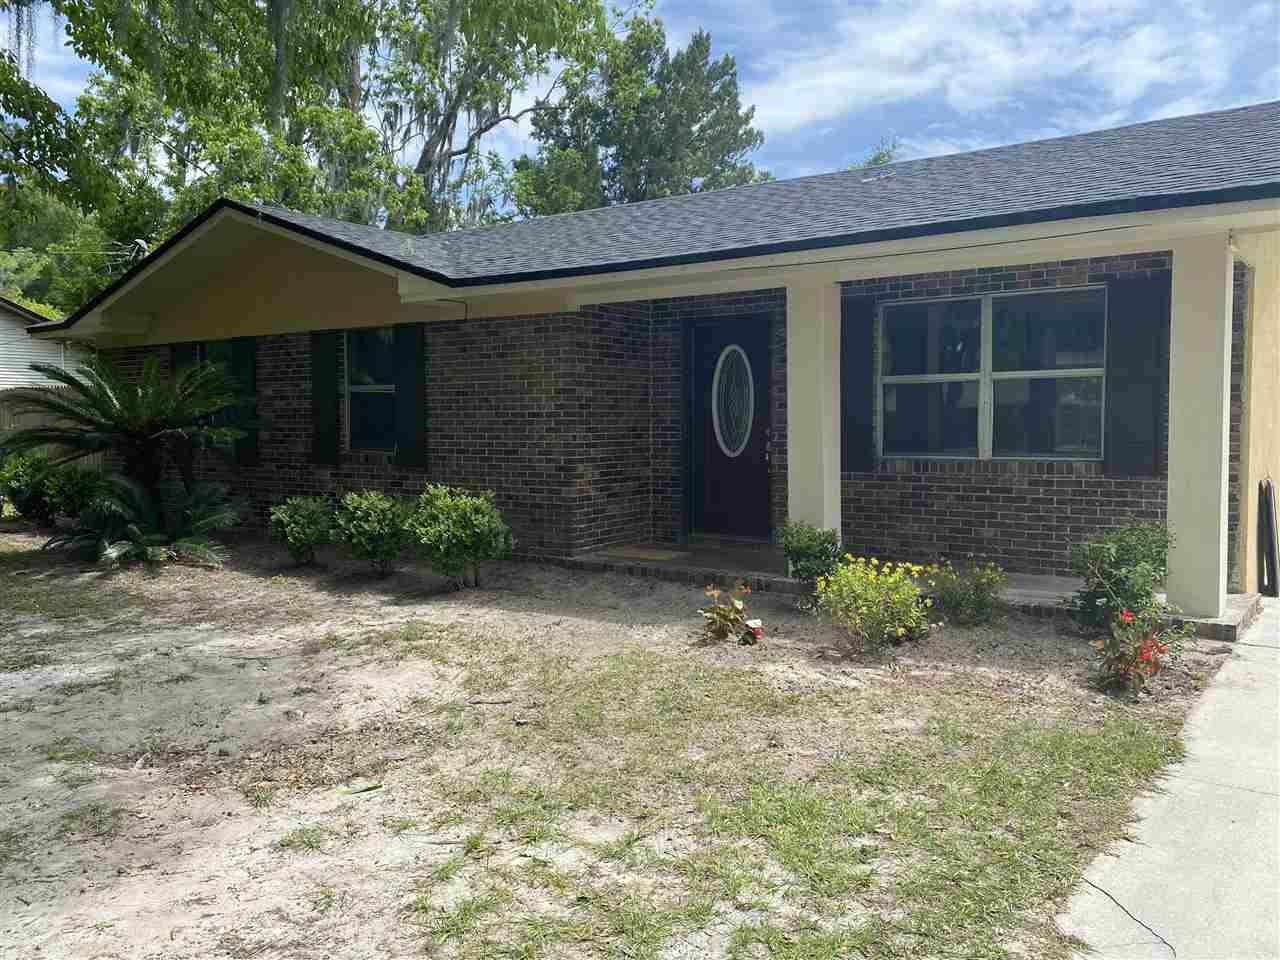 103 Grove Ave, Perry, FL 32348 - MLS#: 332125